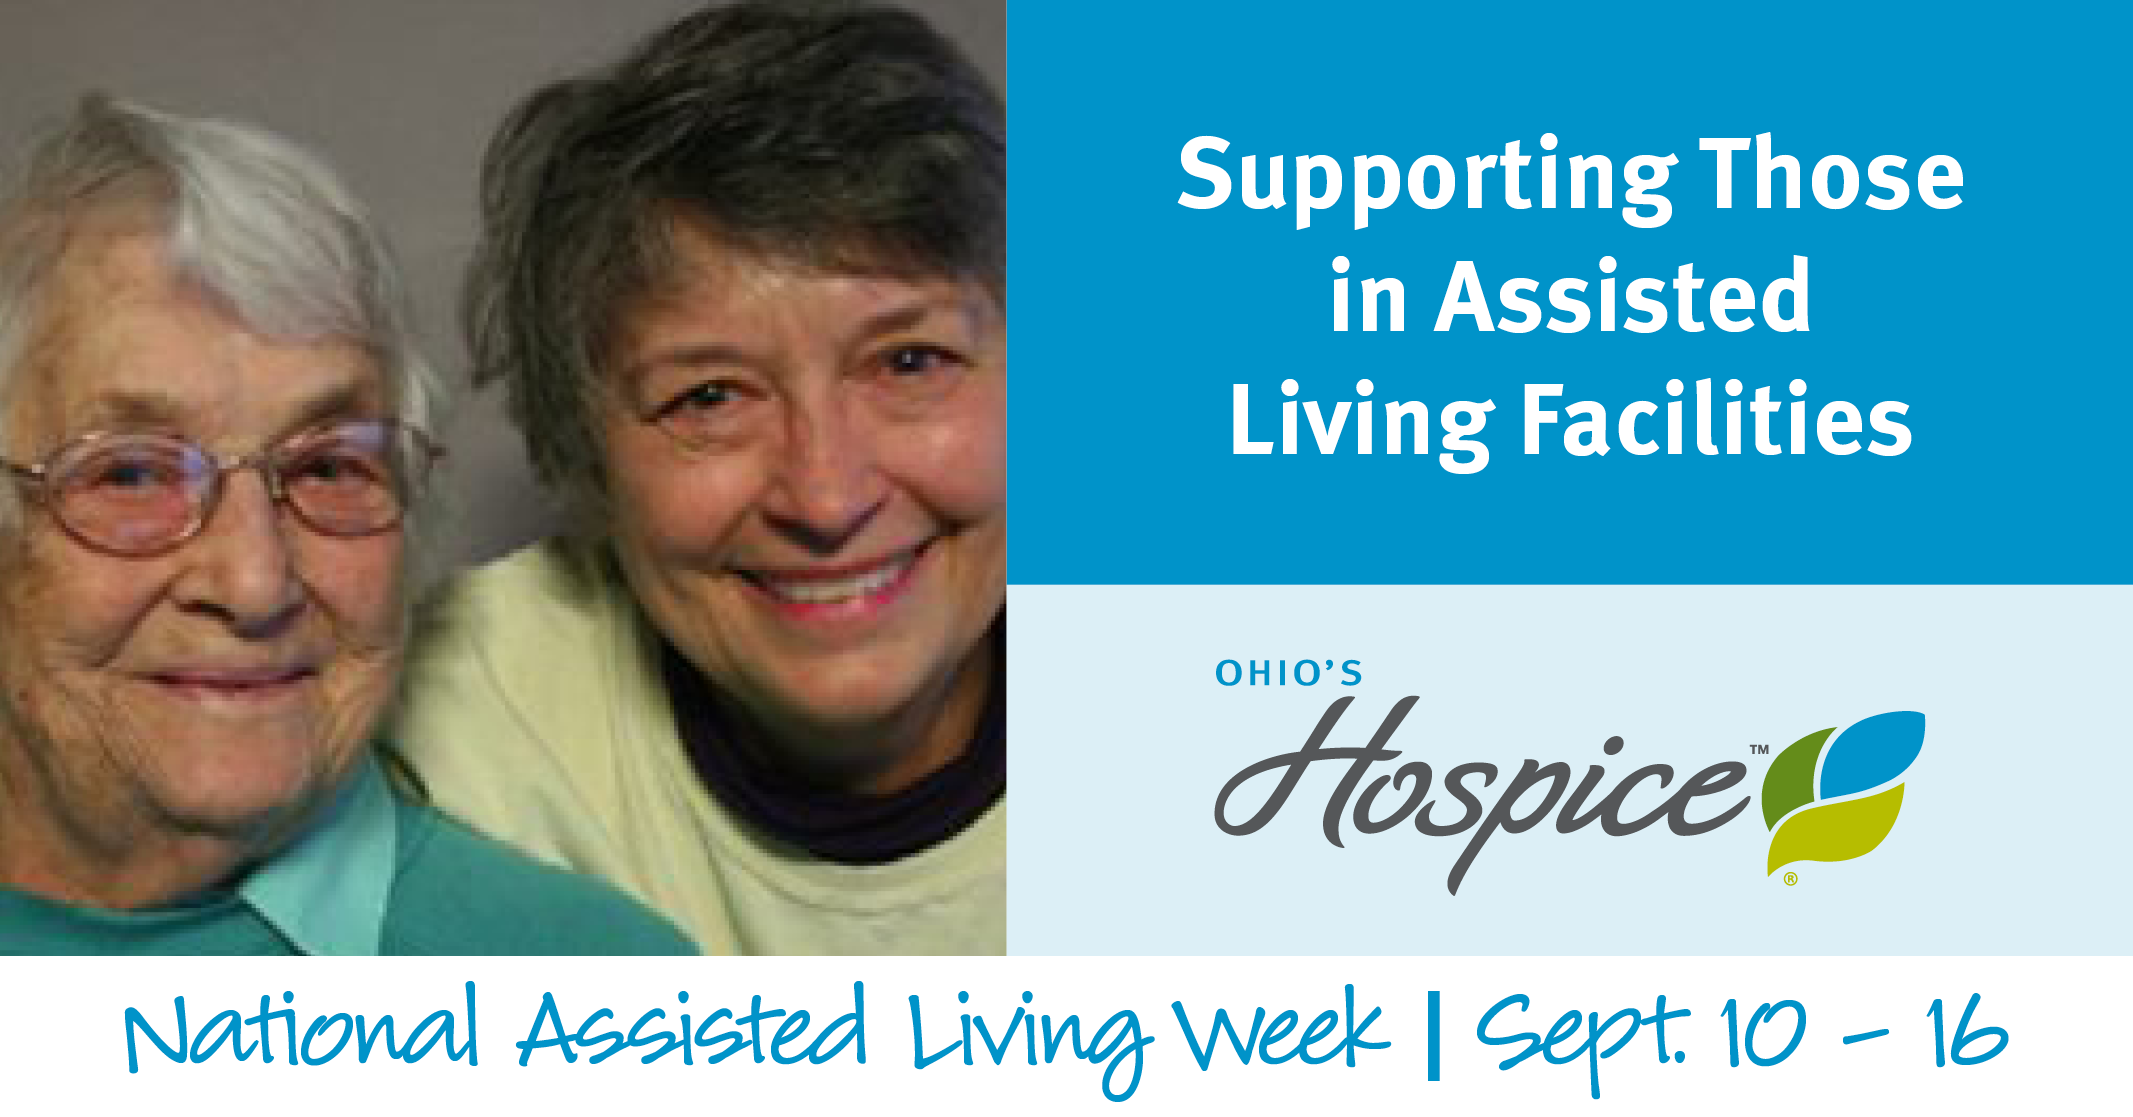 An Extra Layer Of Care And Support For Those In Assisted Living Facilities Who Face Life-Limiting Illness